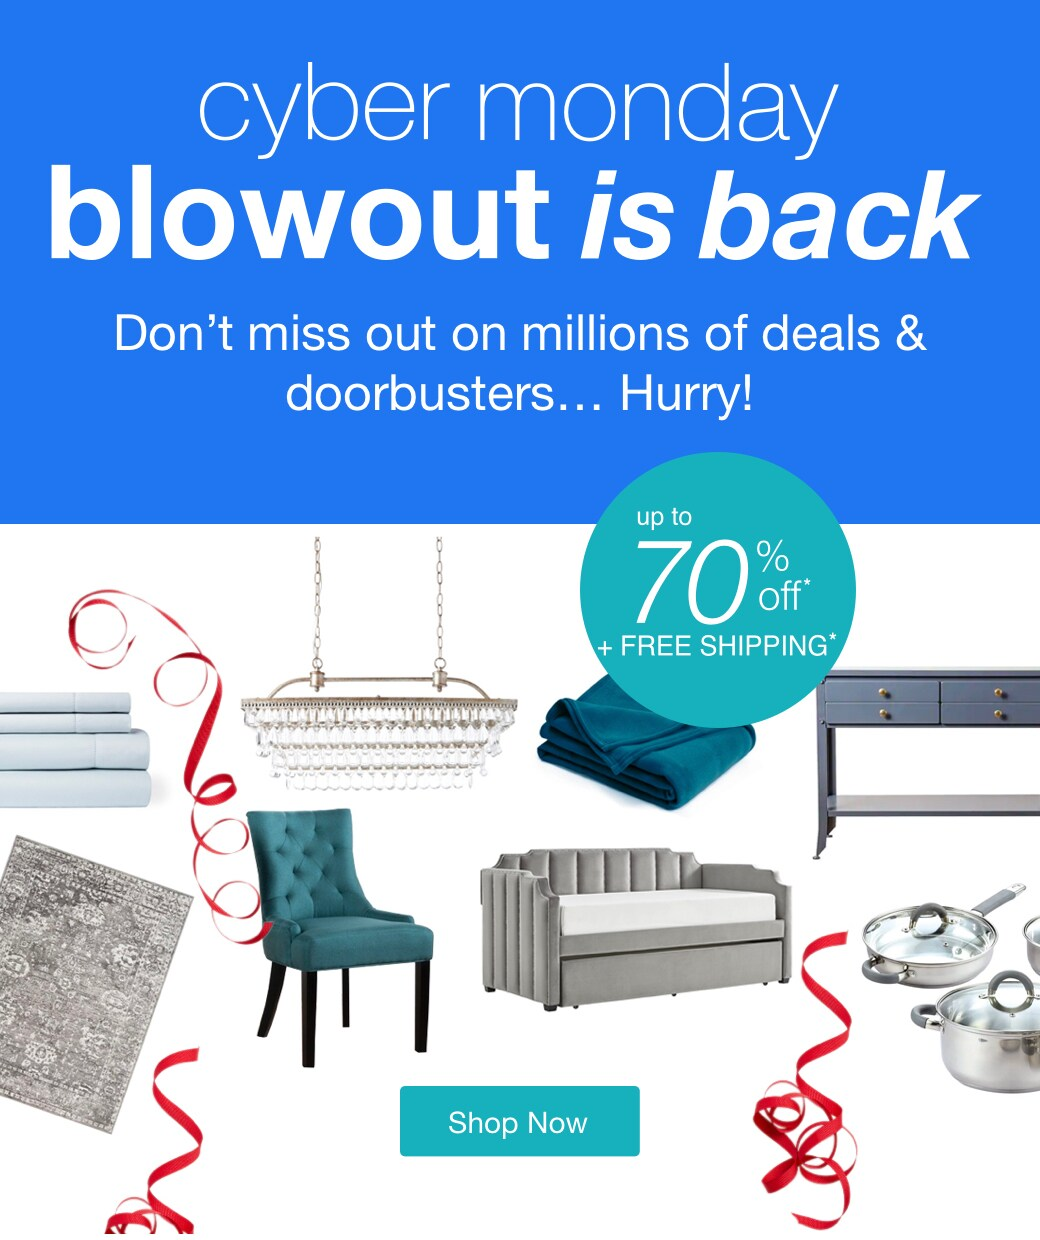 cyber monday blowout is back